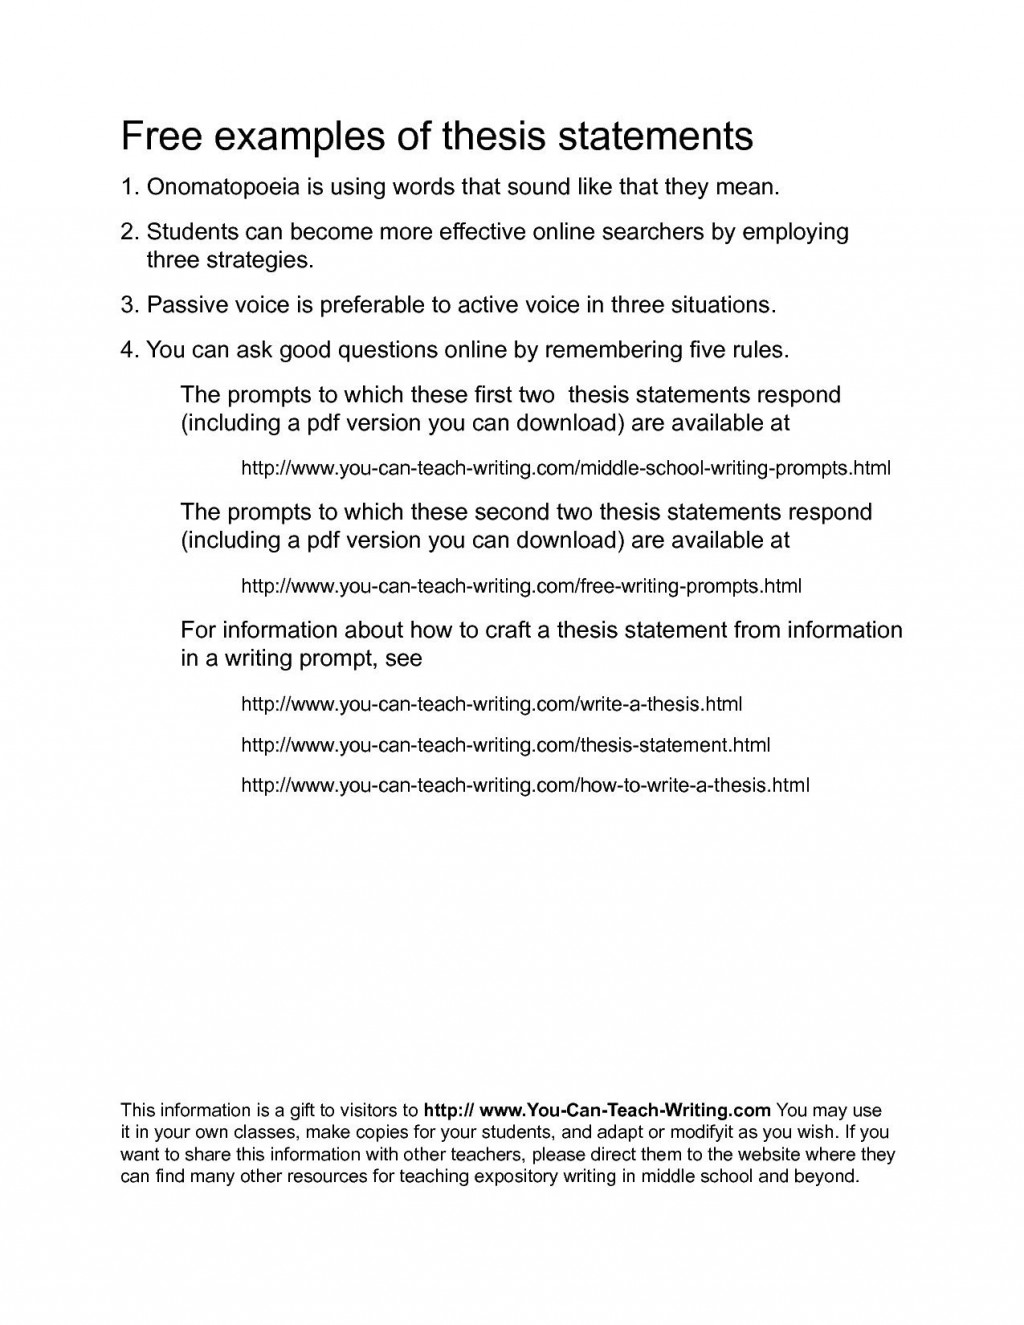 019 Free Write Essay Personal Writer Website Auditor Reviews On Spirit Vision Websites That Essays For You Type Archaicawful Writing Prompts Examples To Large